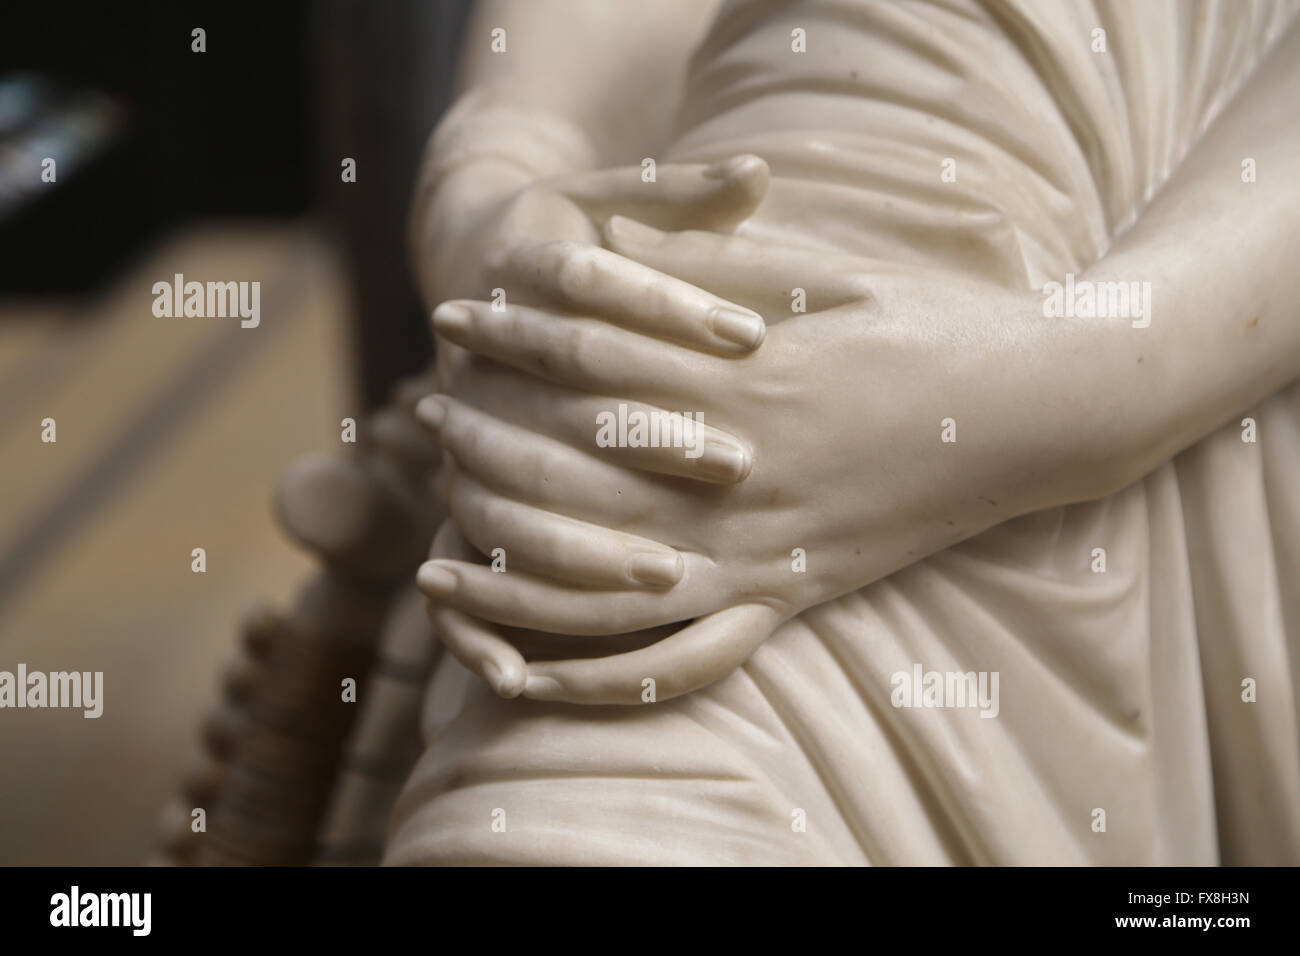 Poetess Sappho, 1852. Marble statue by James Pradier (1790-1852). Detail hands. Orsay Museum. Paris. France. - Stock Image